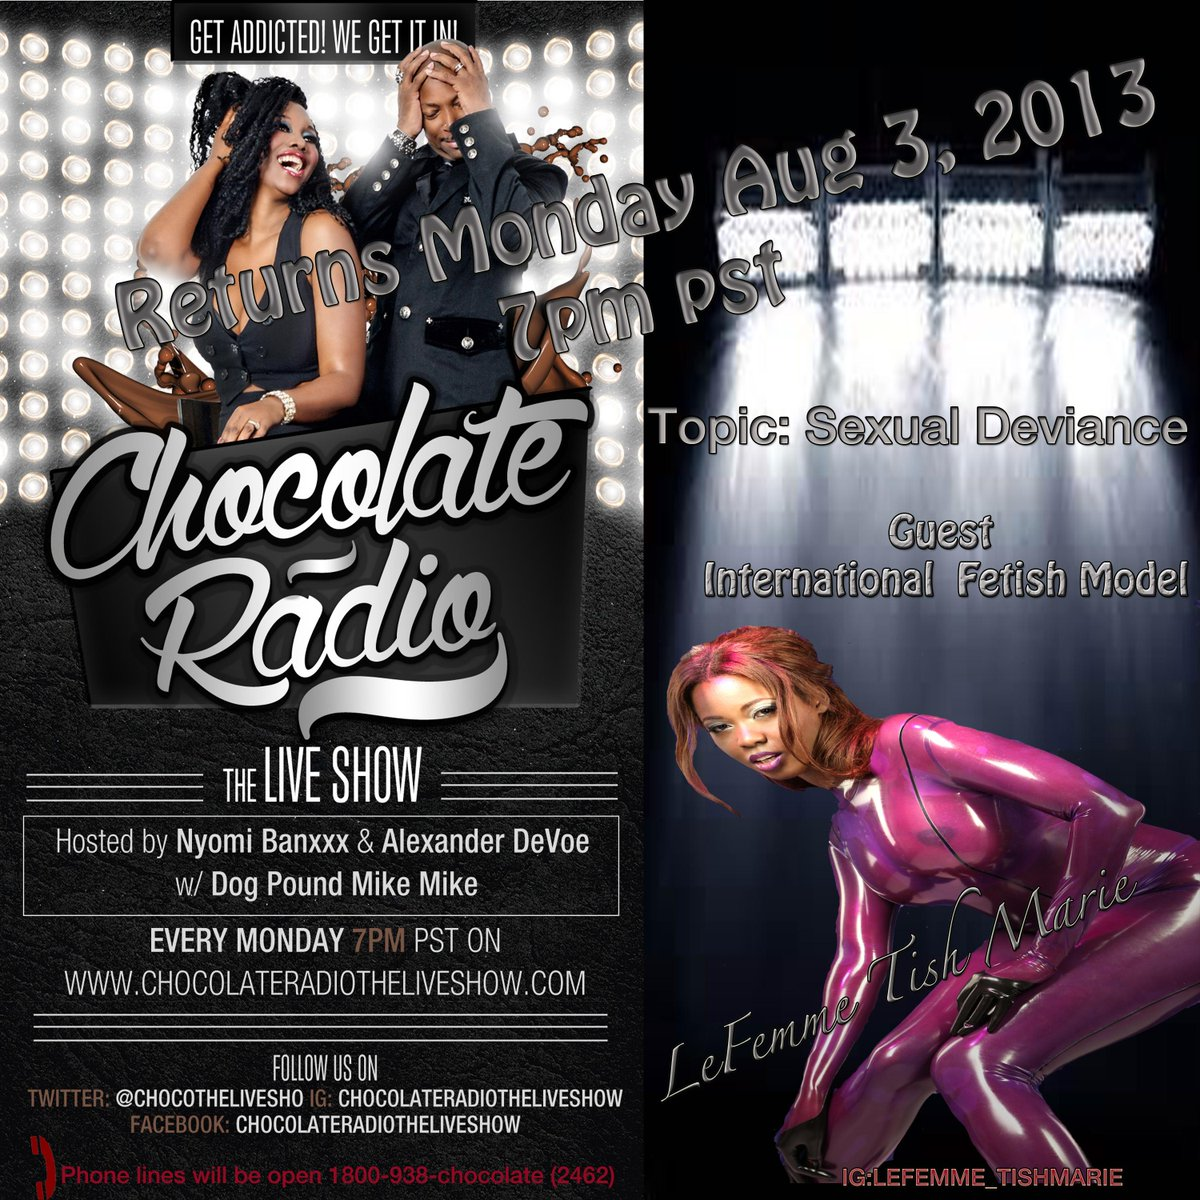 Tune in tonight where we have the sexy International Fetish Model Lefemme Tish Marie On